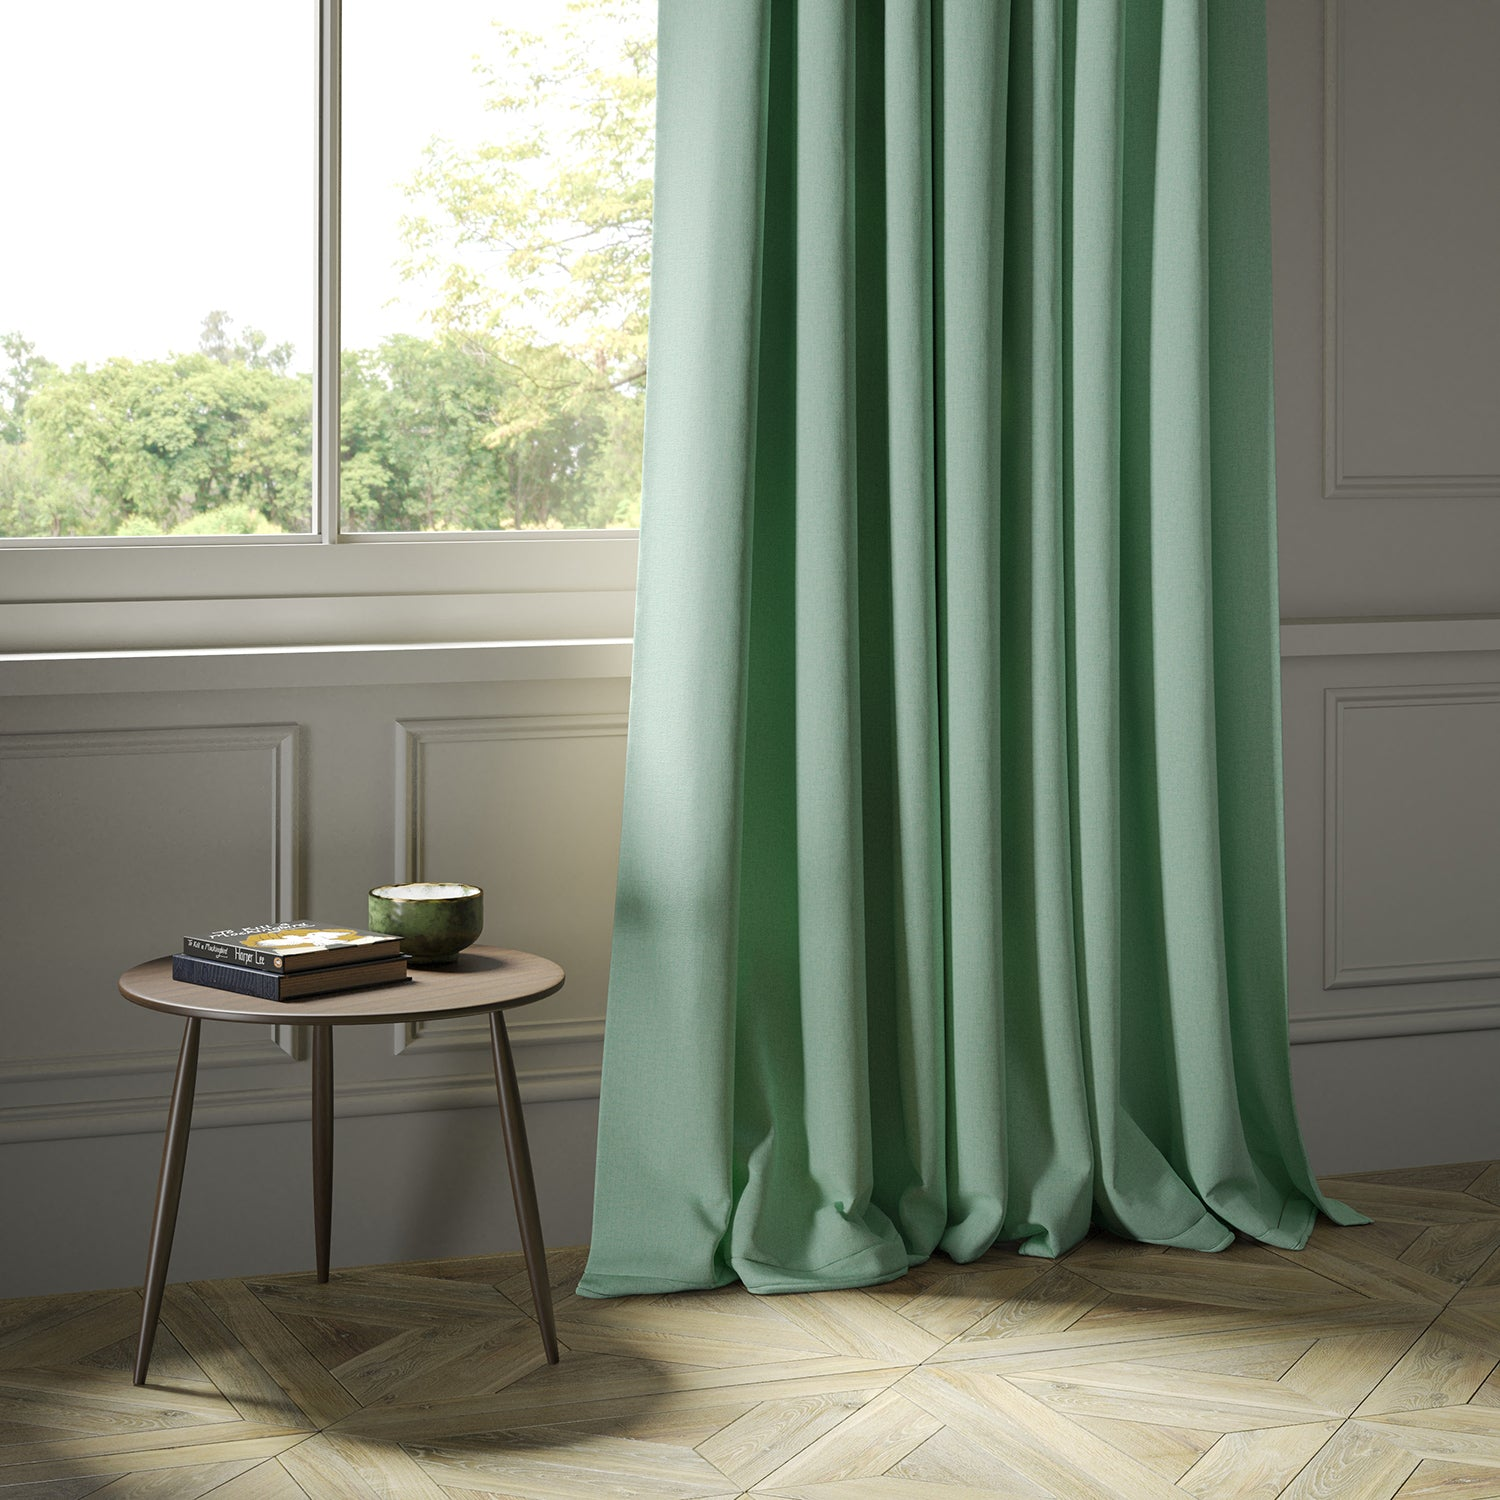 Curtains in a luxury Scottish plain aqua coloured wool fabric